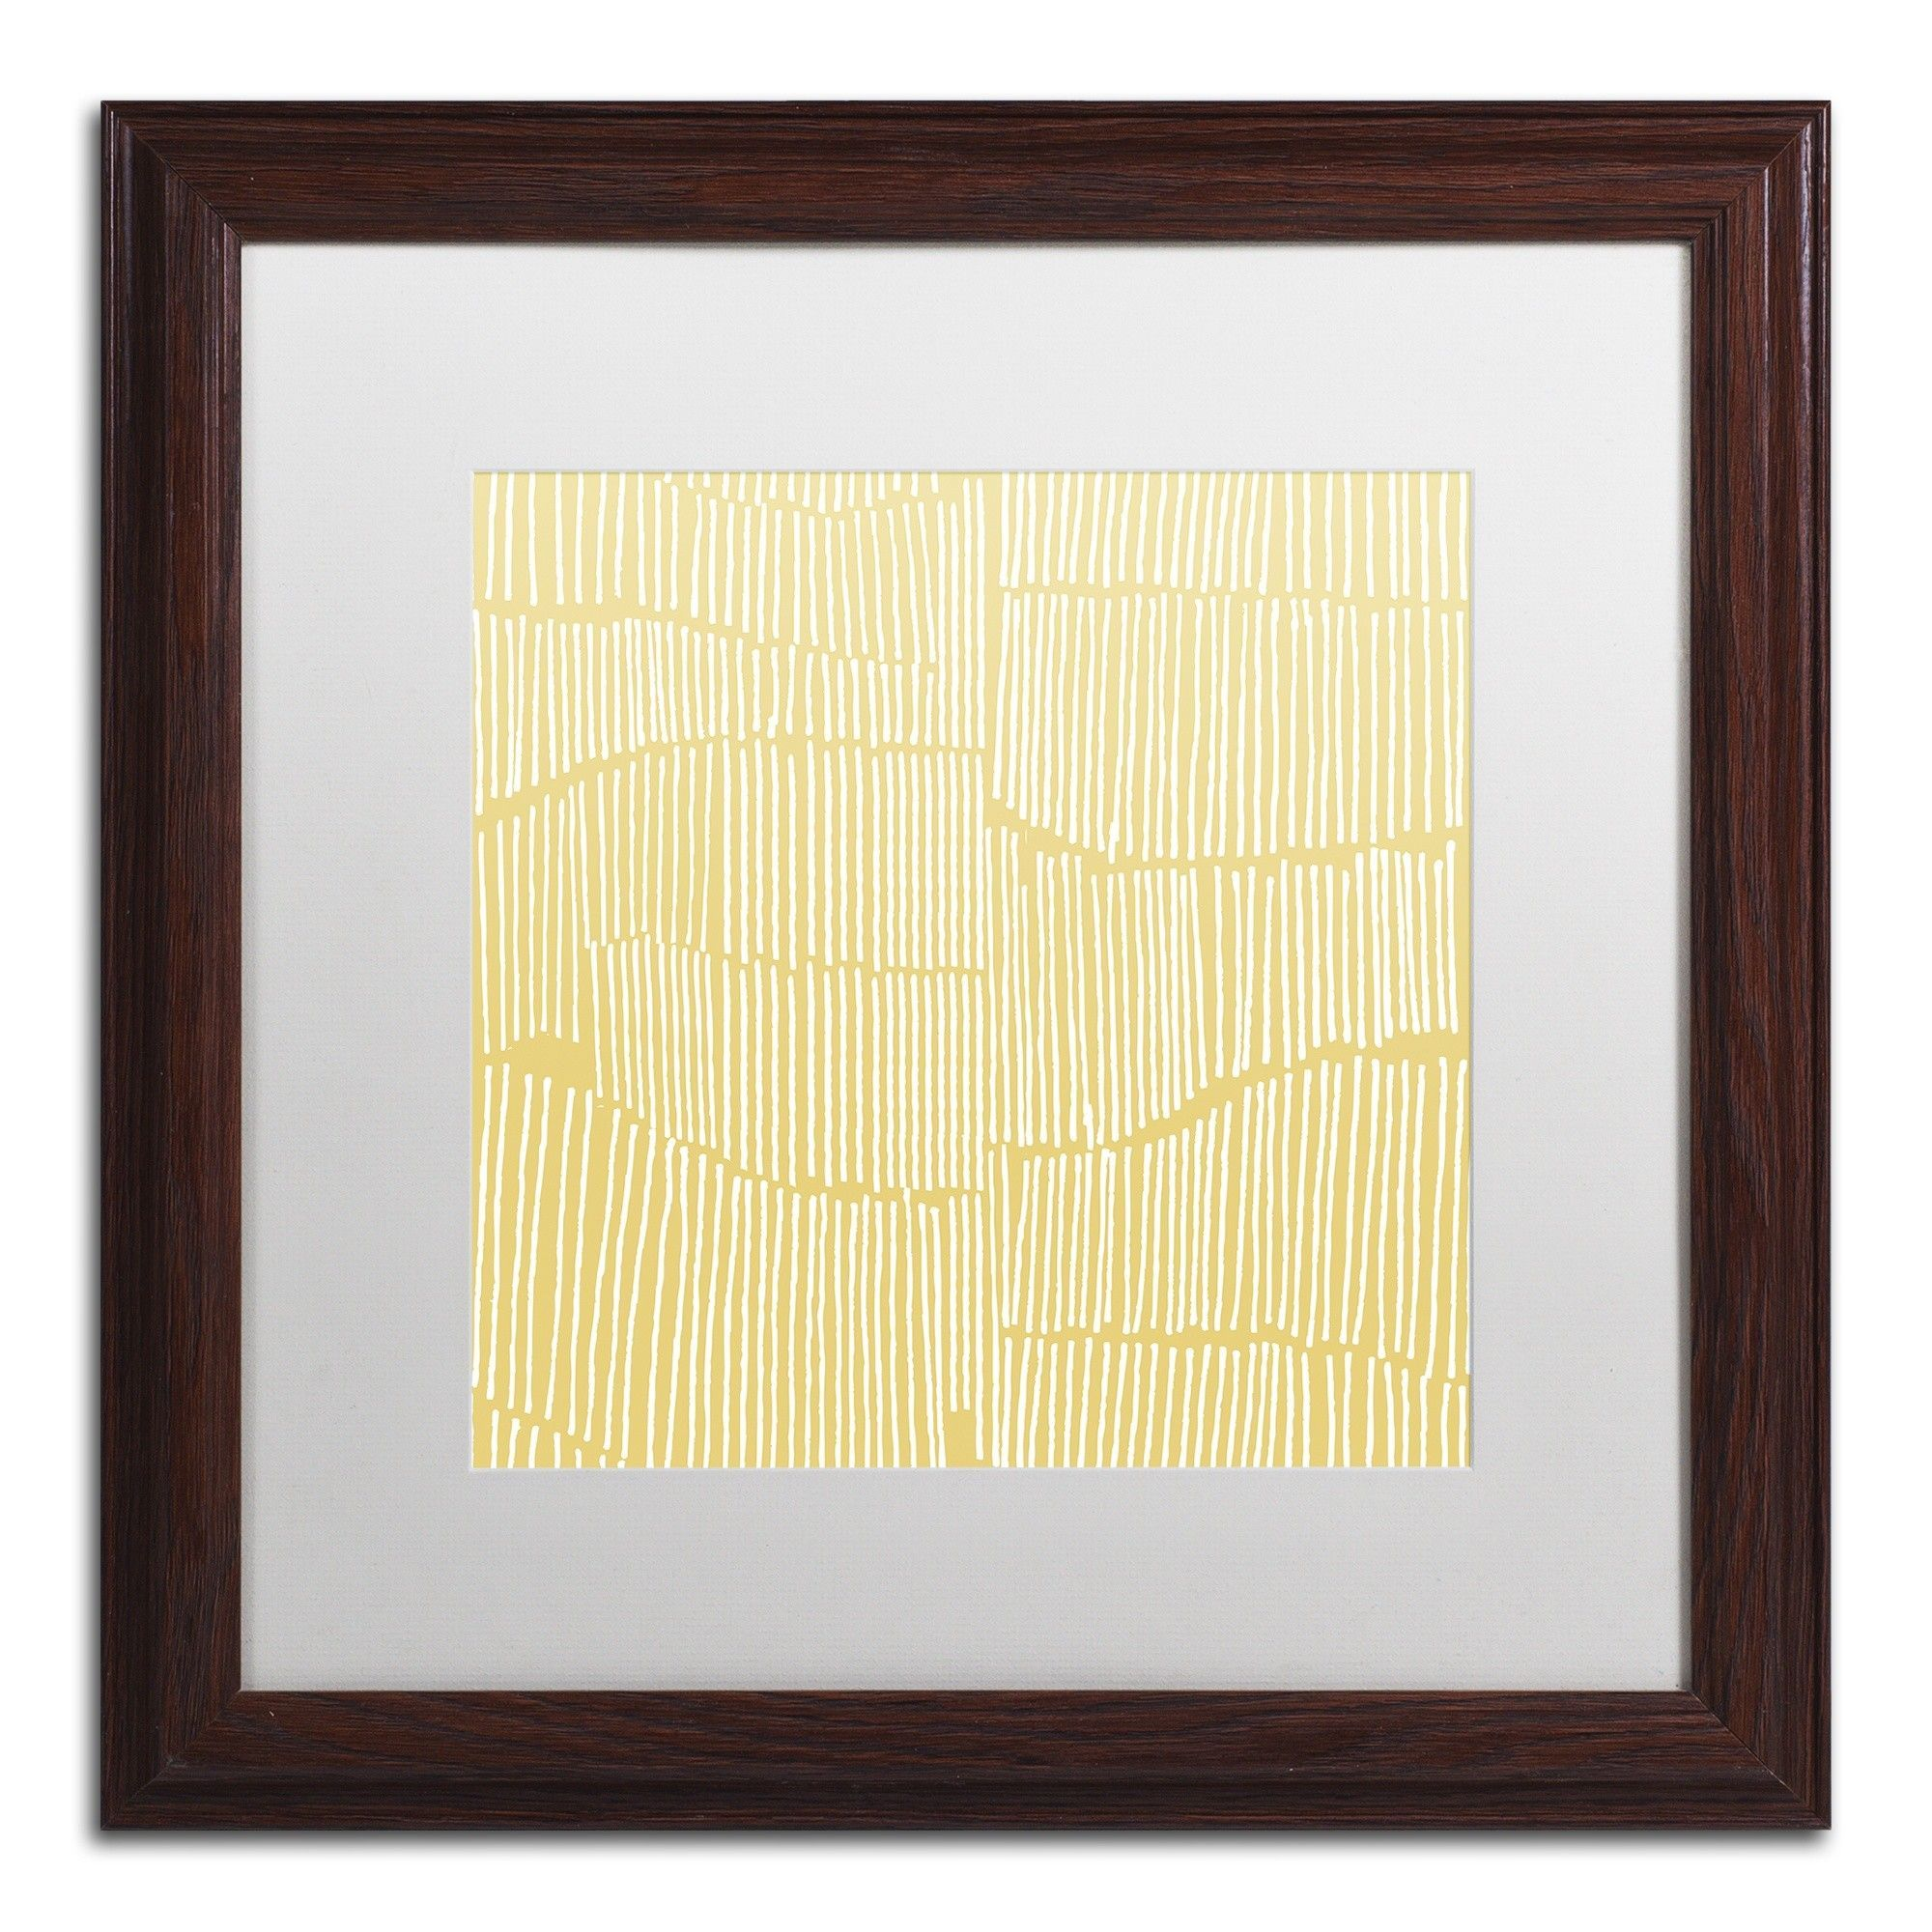 Spaces Between II by Kavan & Co Matted Framed Graphic Art | Graphic ...